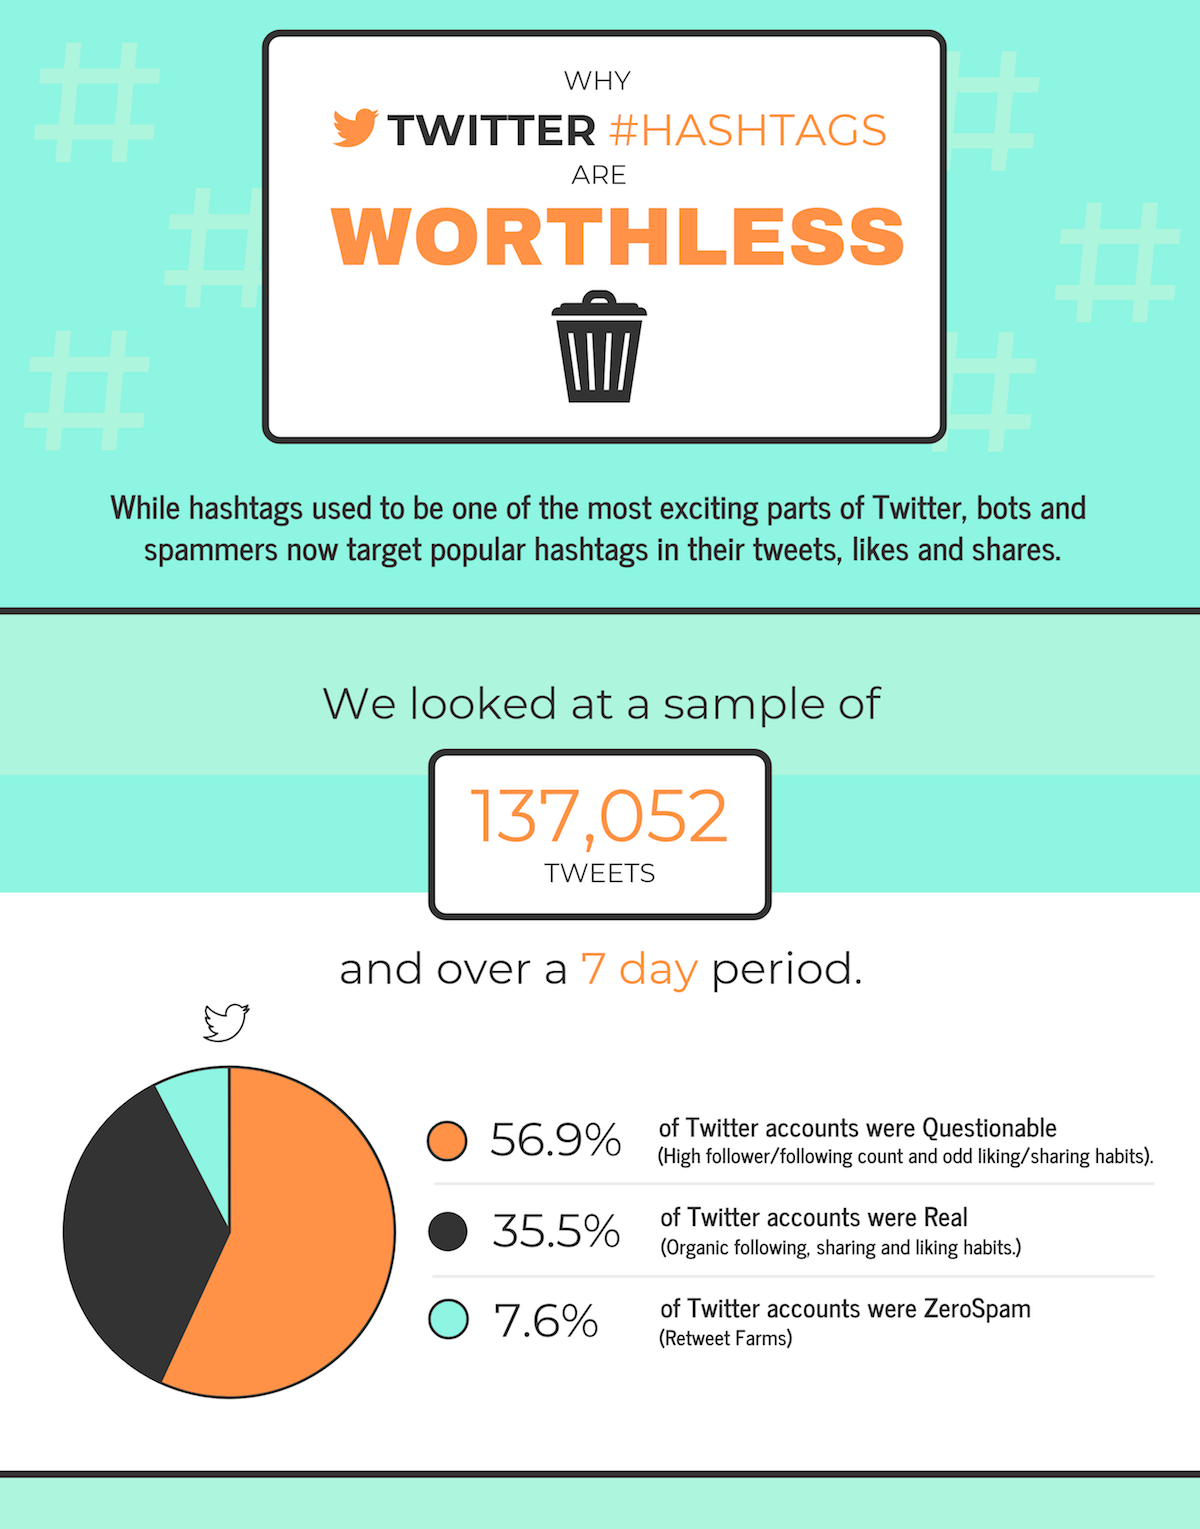 Why Twitter Hashtags Are Worthless Social Media Infographic12